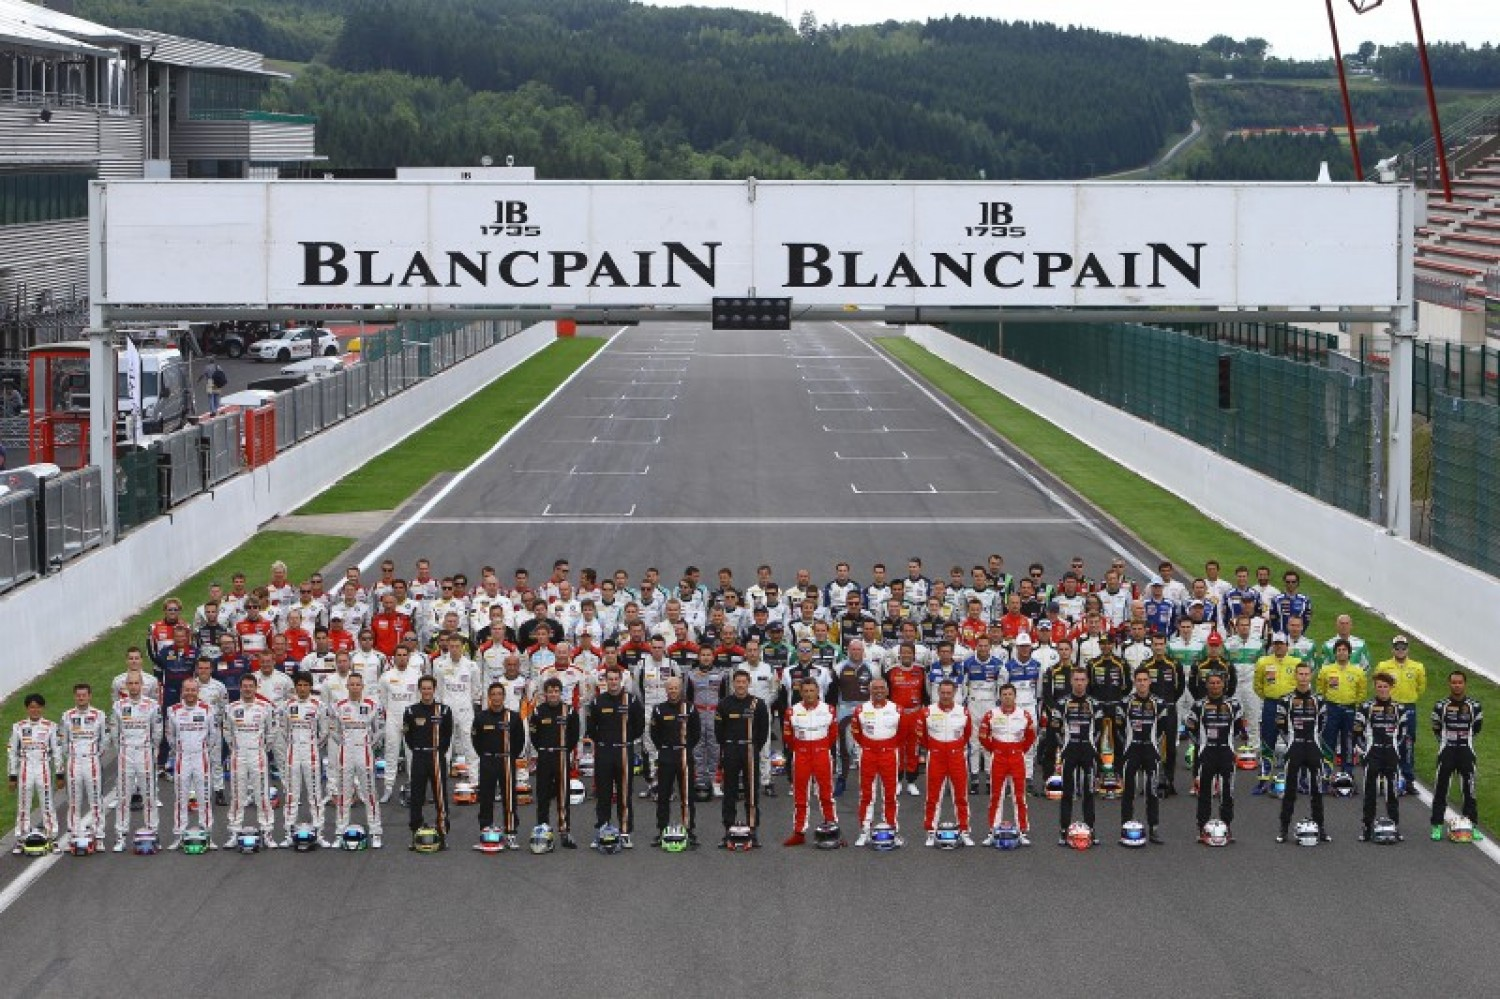 More than 200 drivers ready for the Total 24 hours of Spa